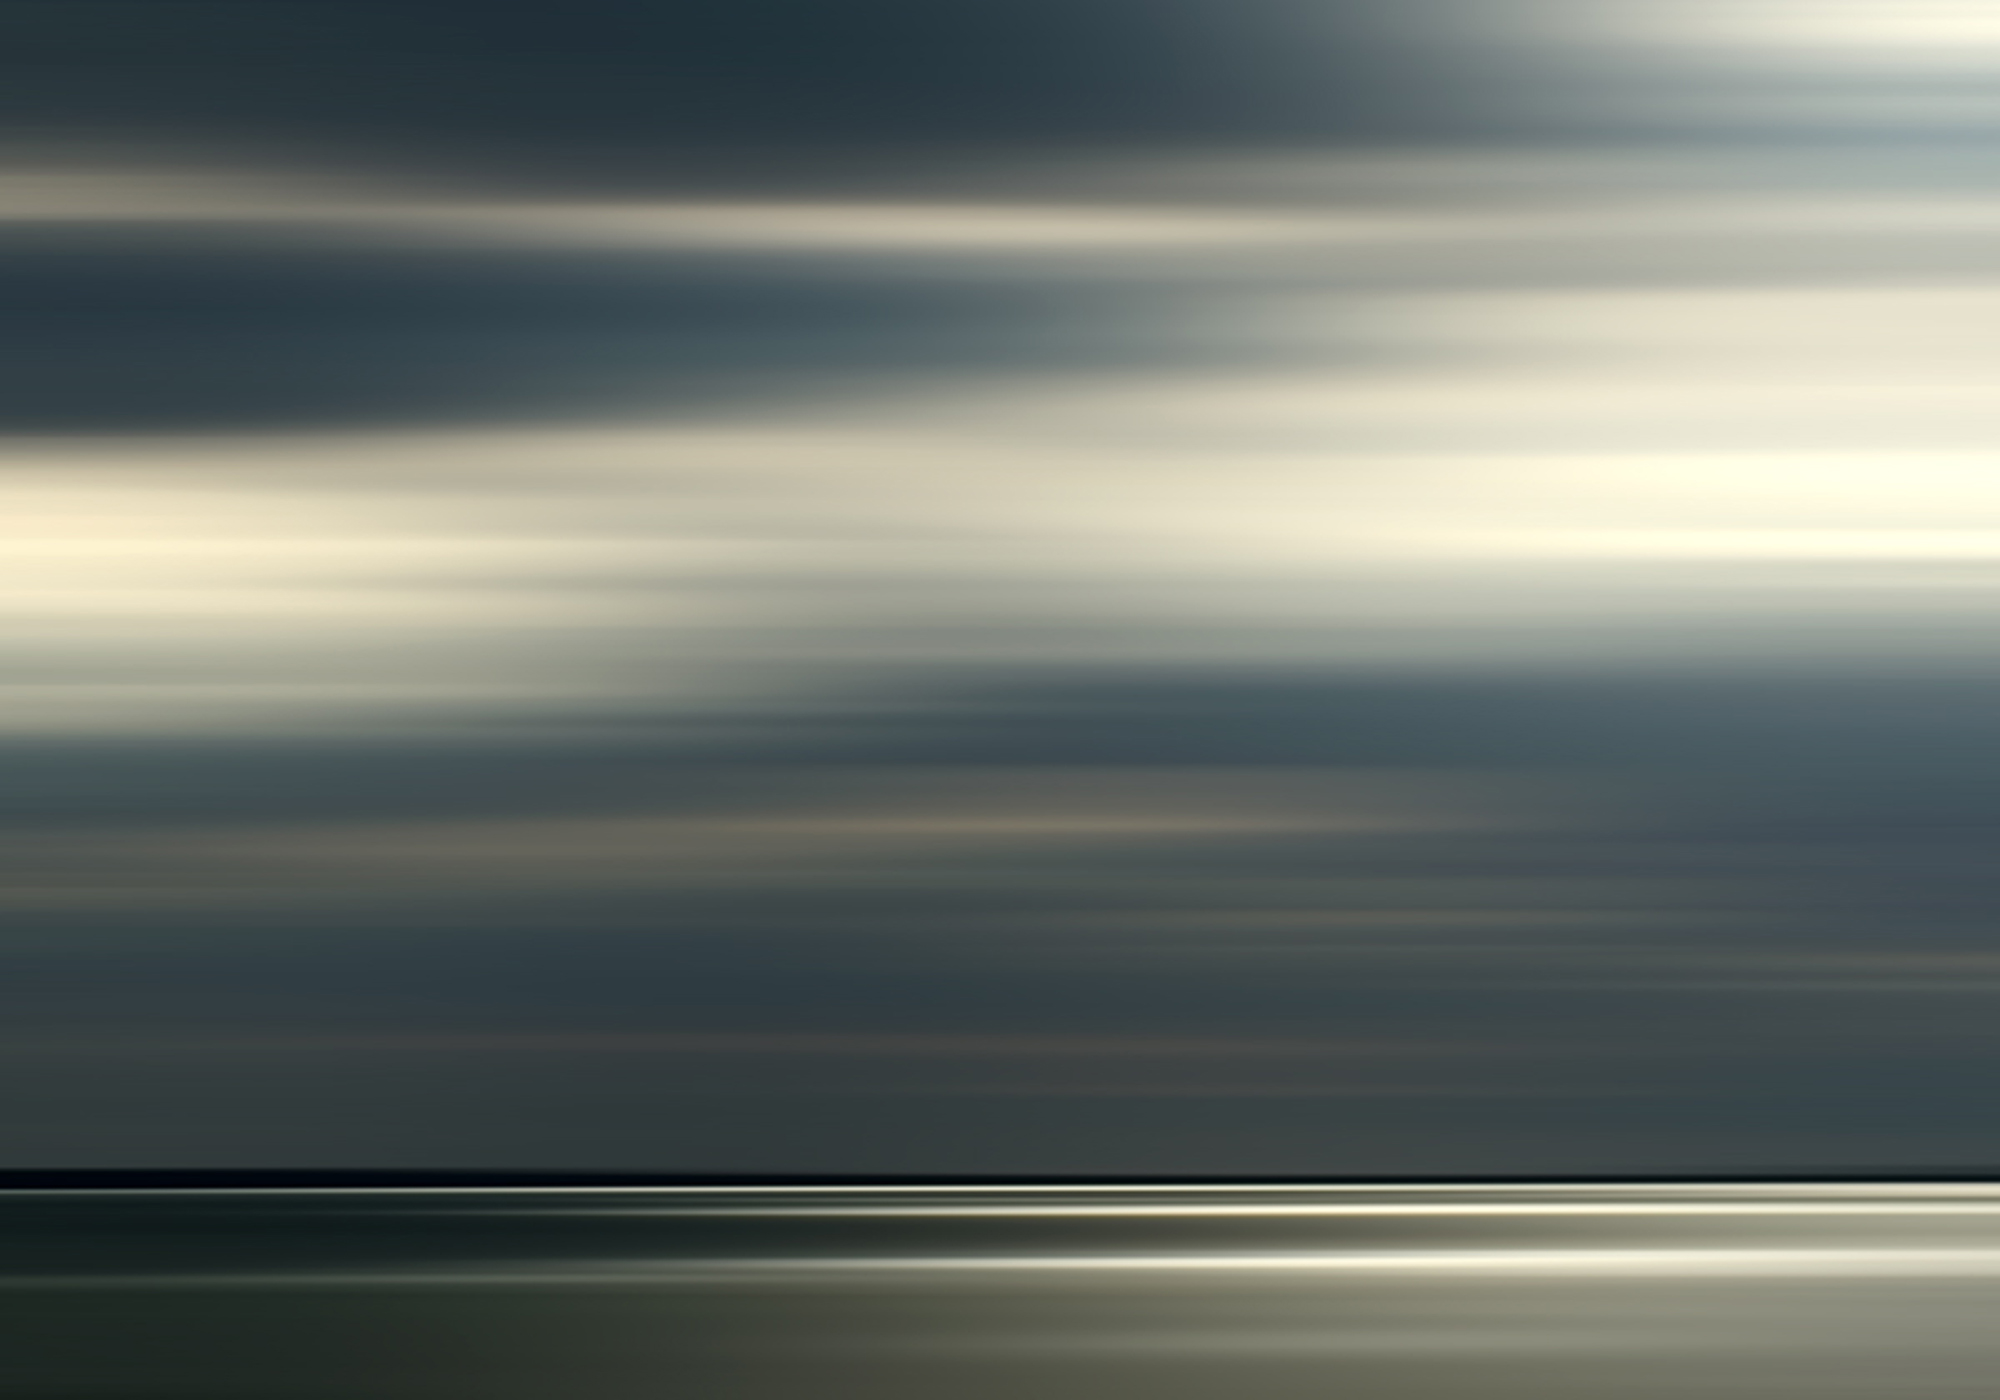 Light and Sea After the Rain, 2018, photograph on plexiglass, 42 x 60 in, edition of 10, $9,500 (other sizes available, priced accordingly)